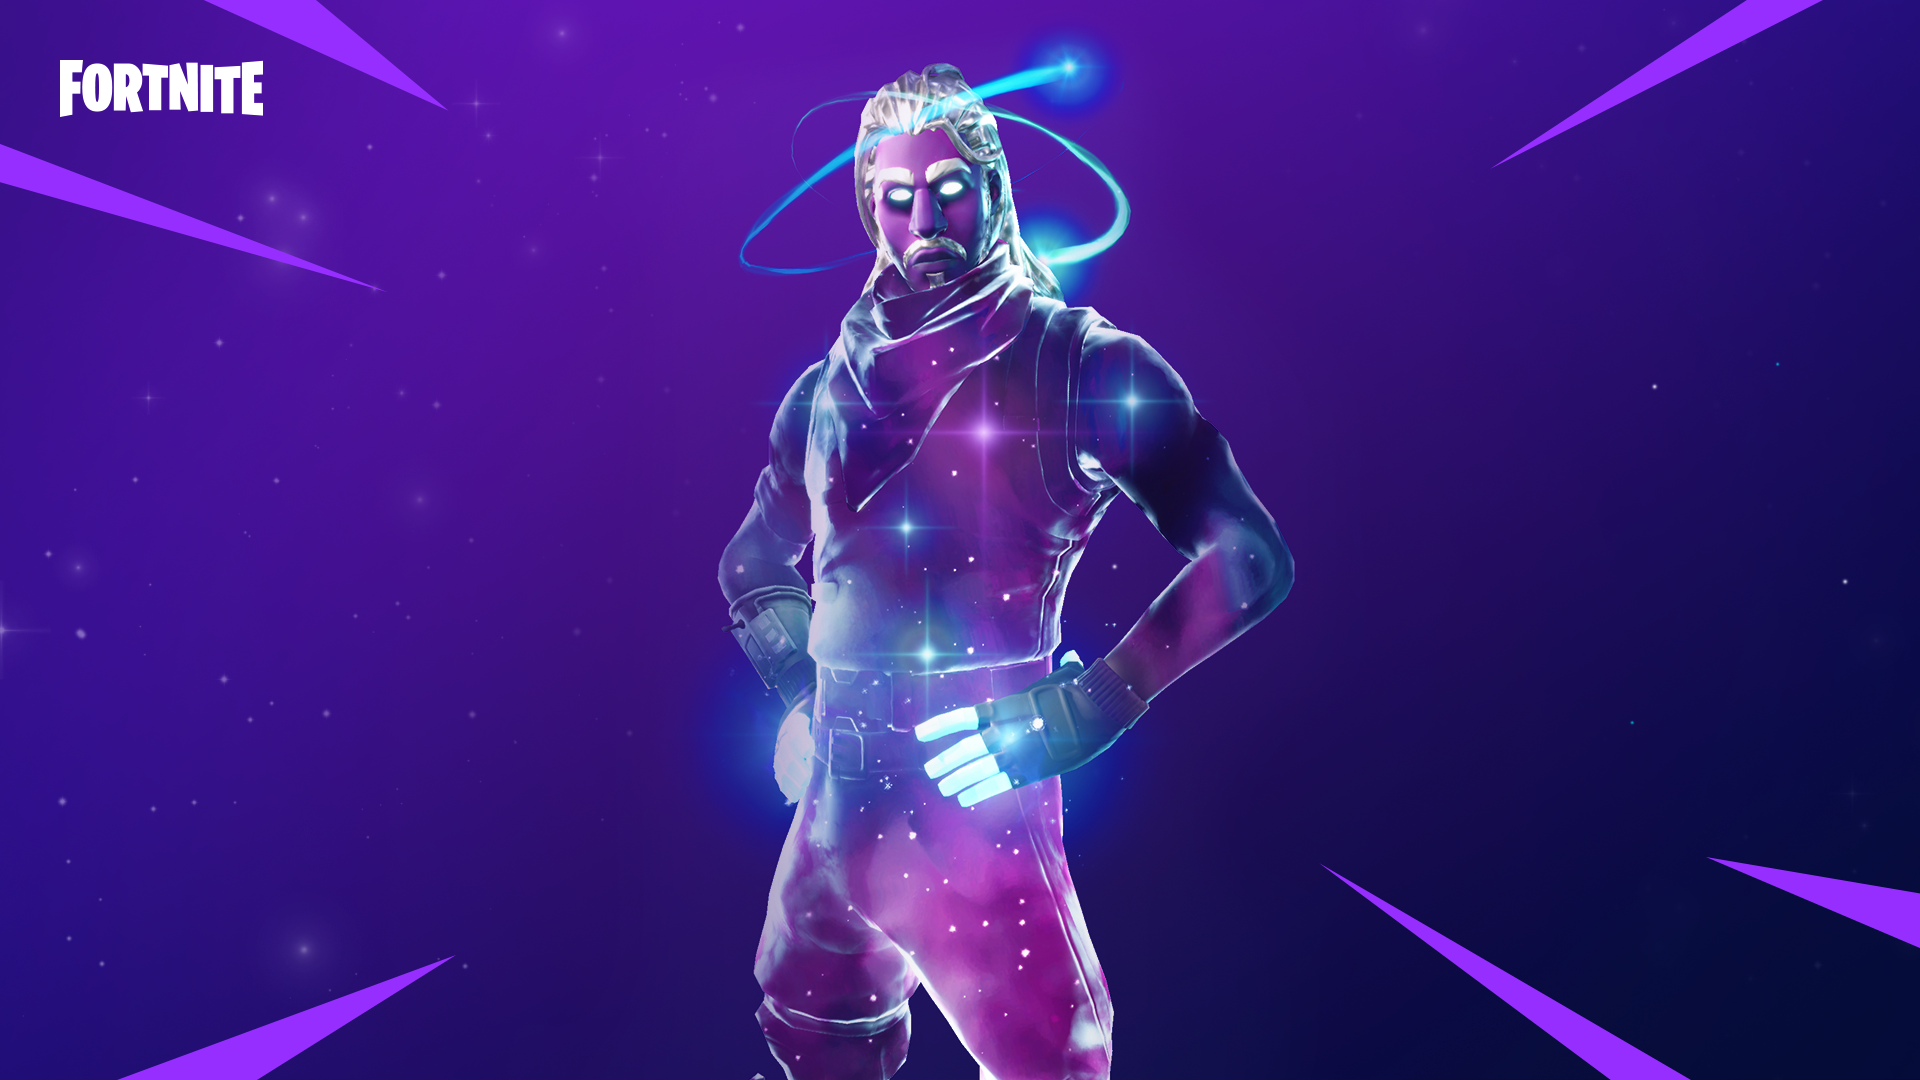 Fortnite HD Wallpaper and Background Image